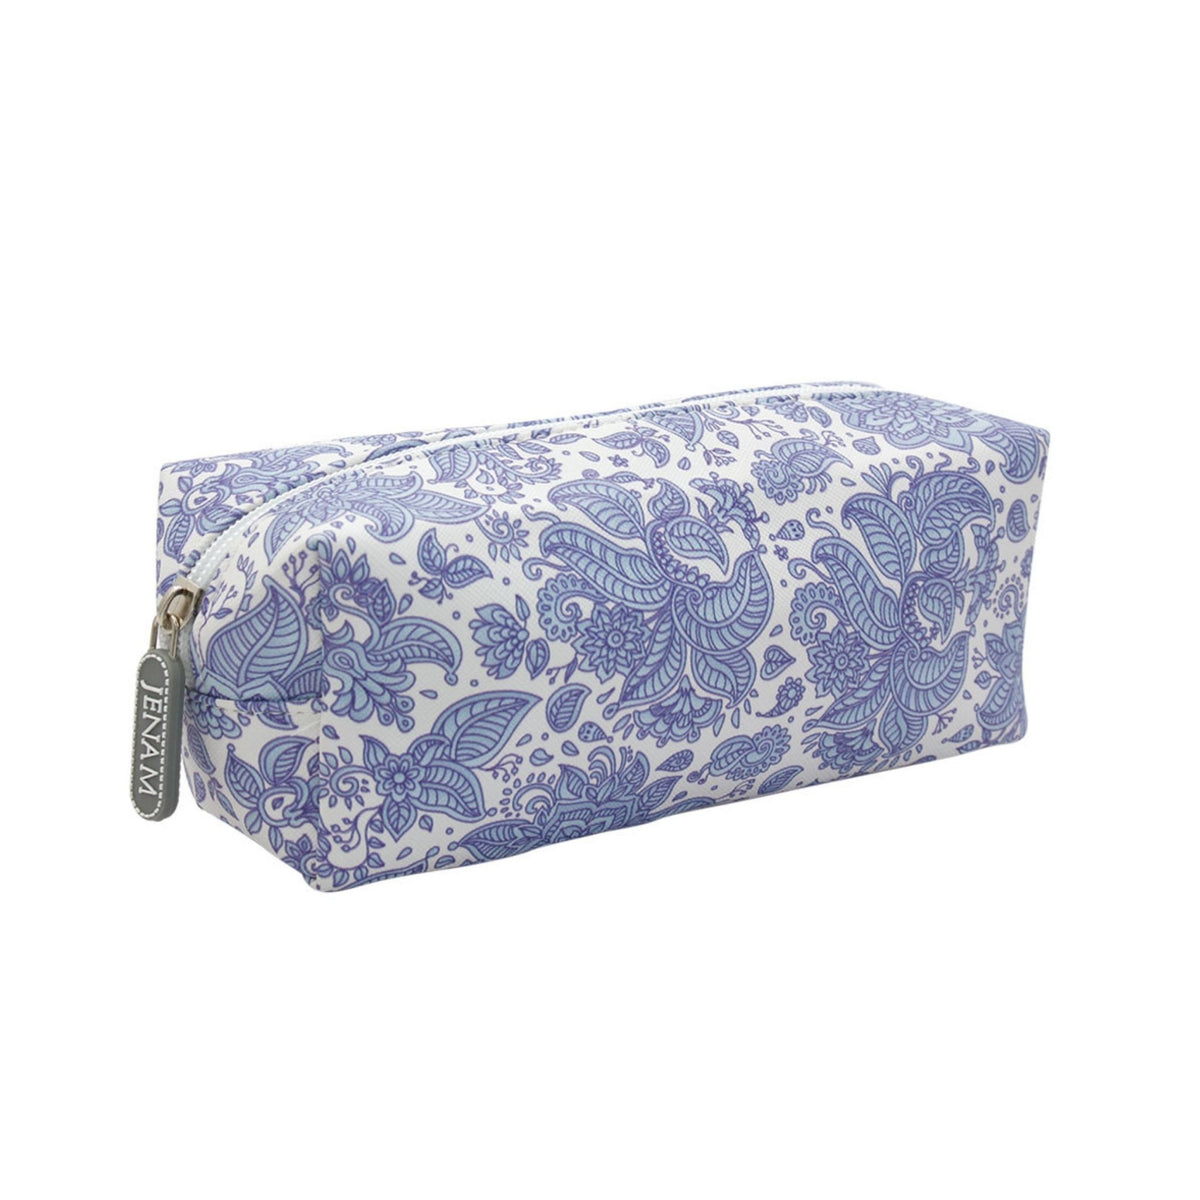 Something Blue Cosmetic Bags (assorted sizes)